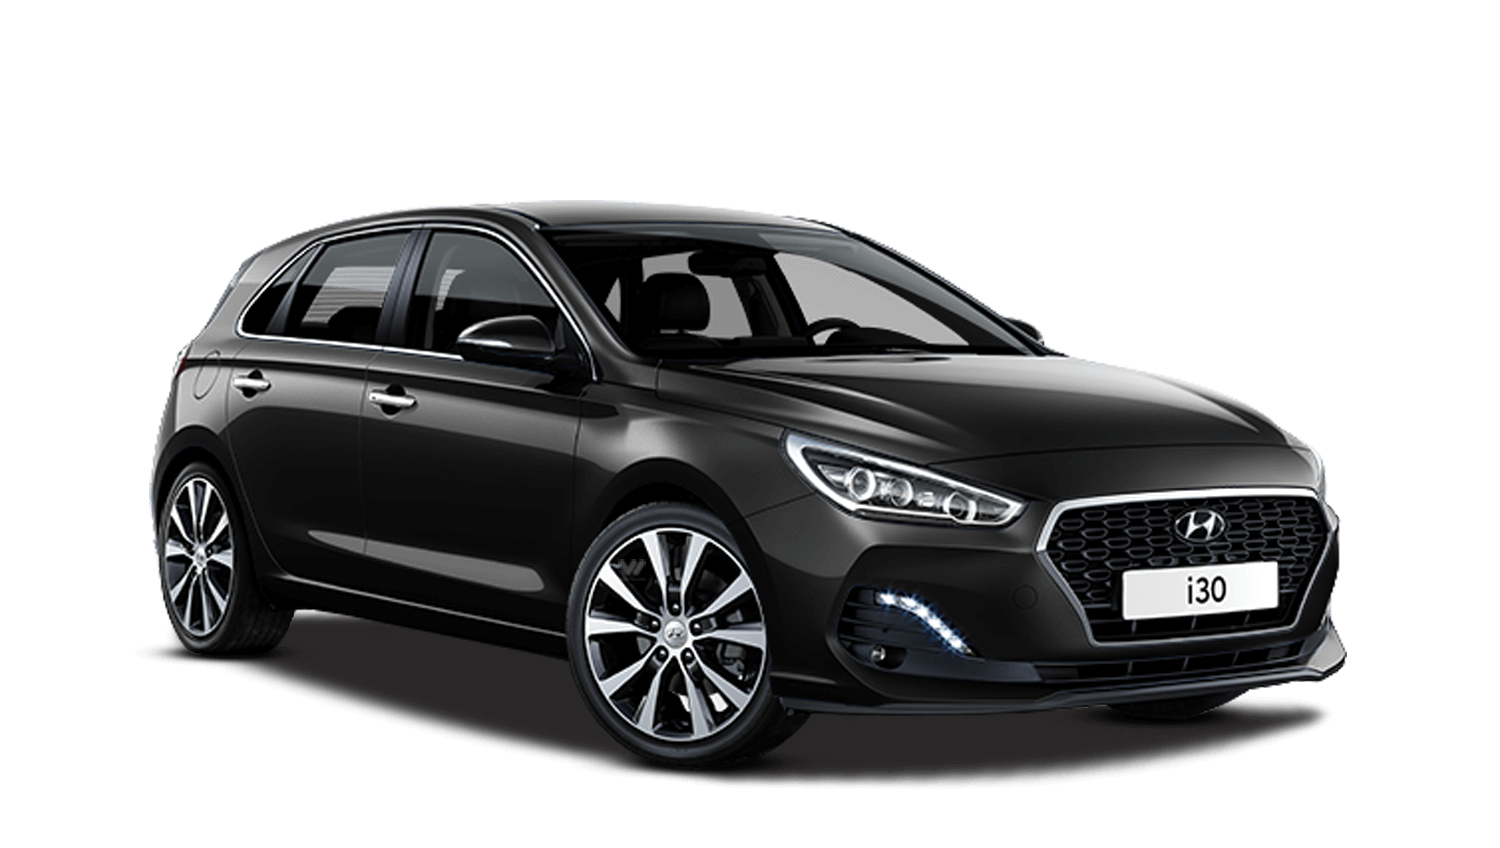 Phantom Black Hyundai I30